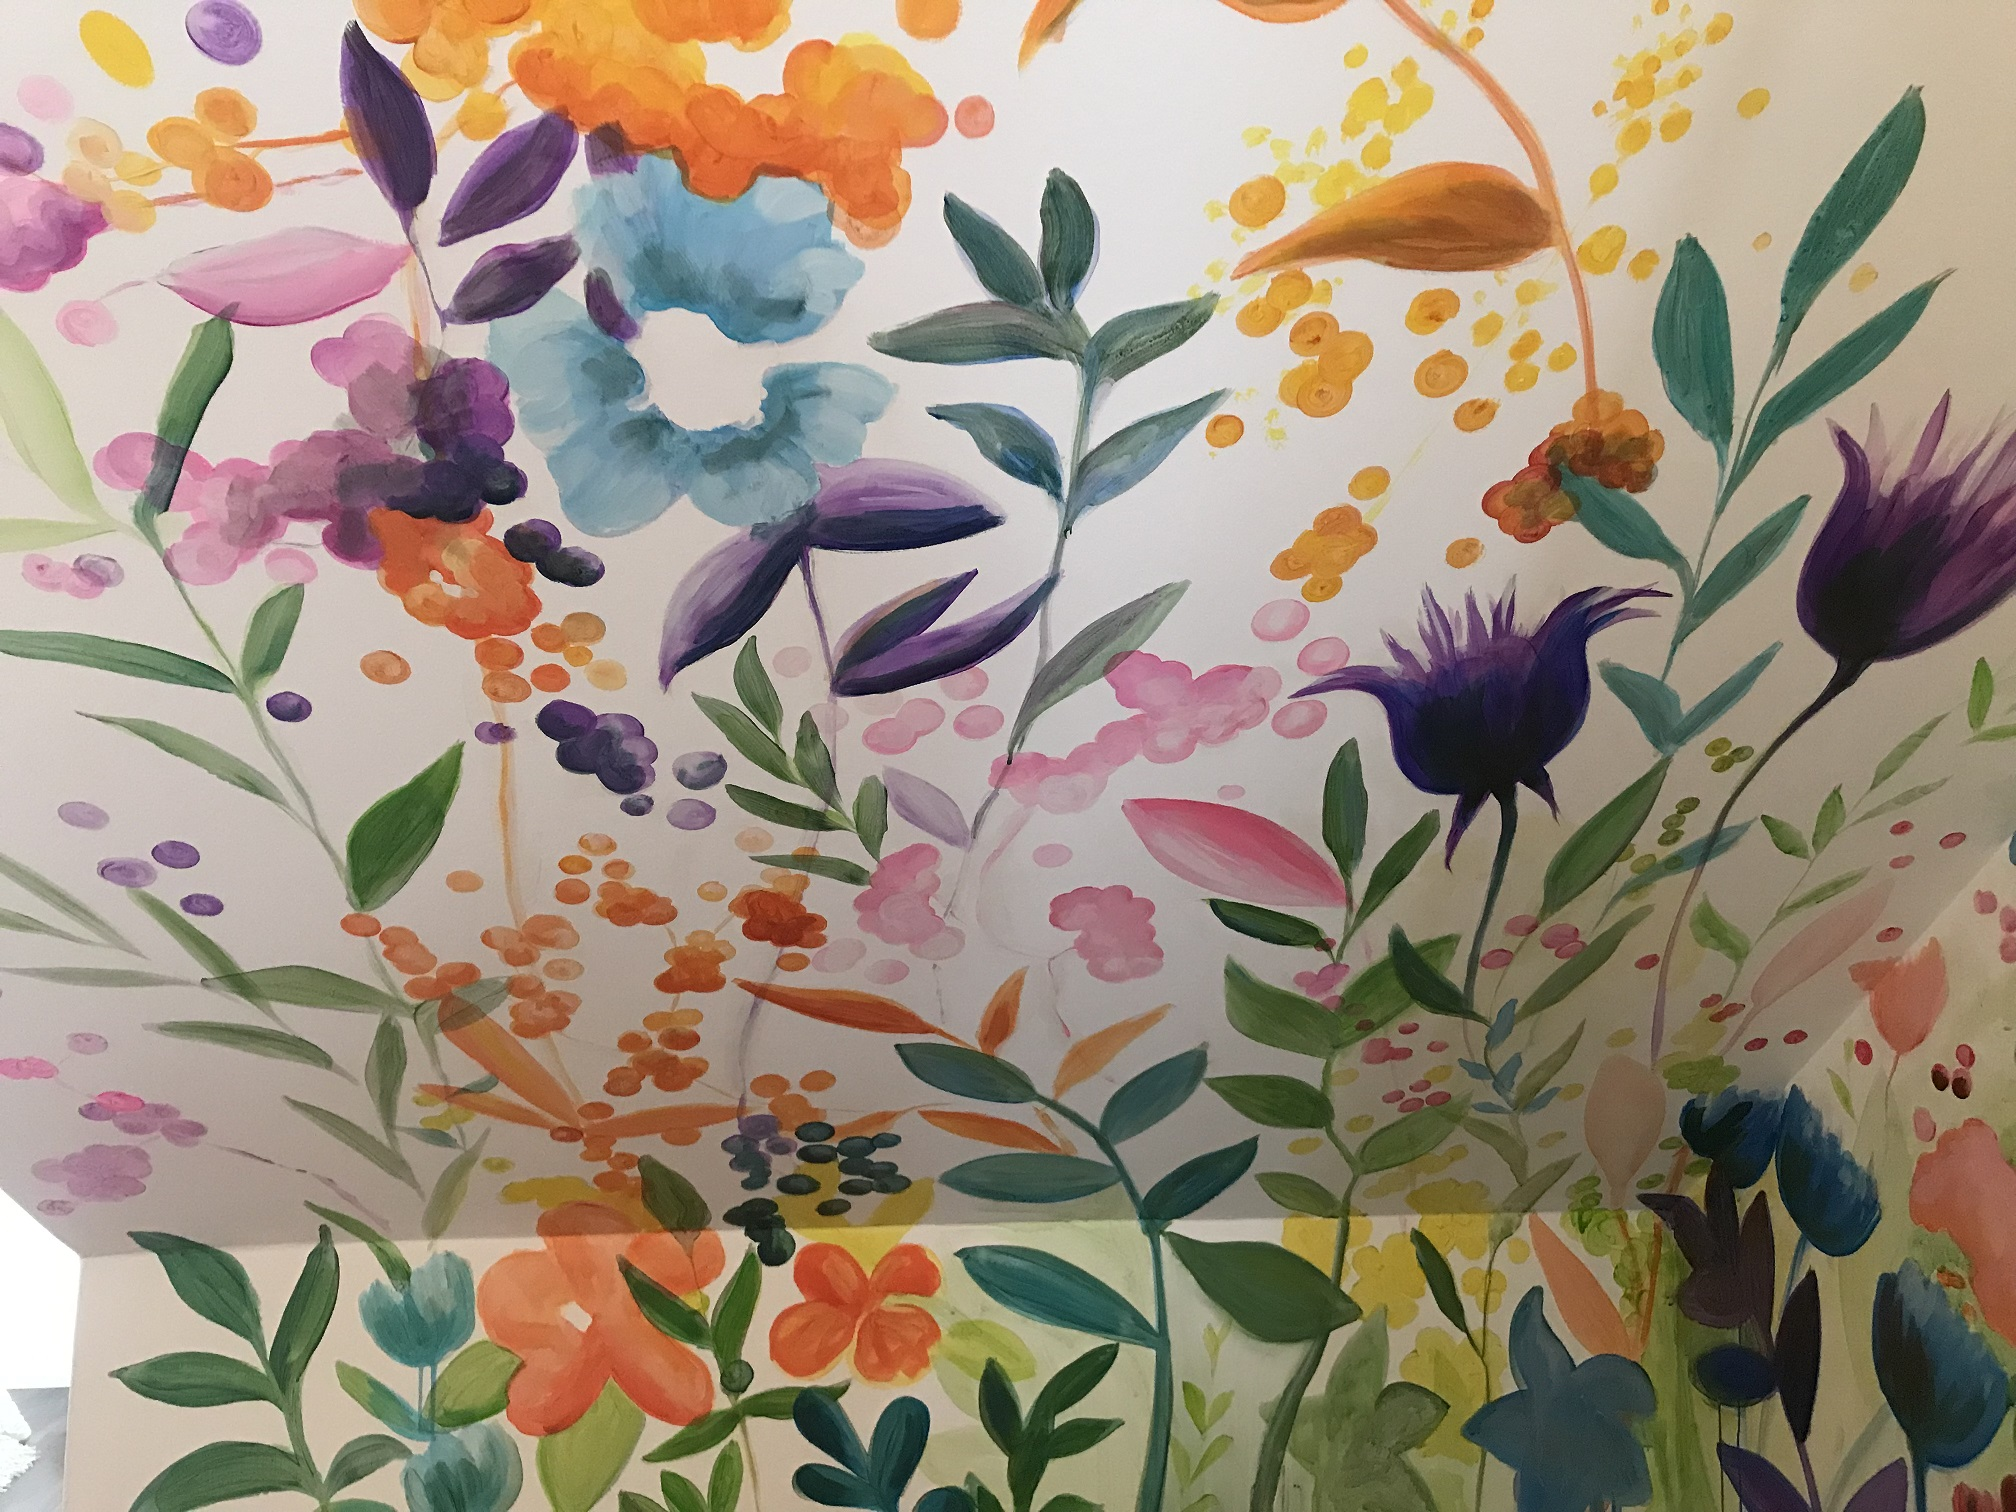 Murals By Marg - Spring Flowers Mural 2.